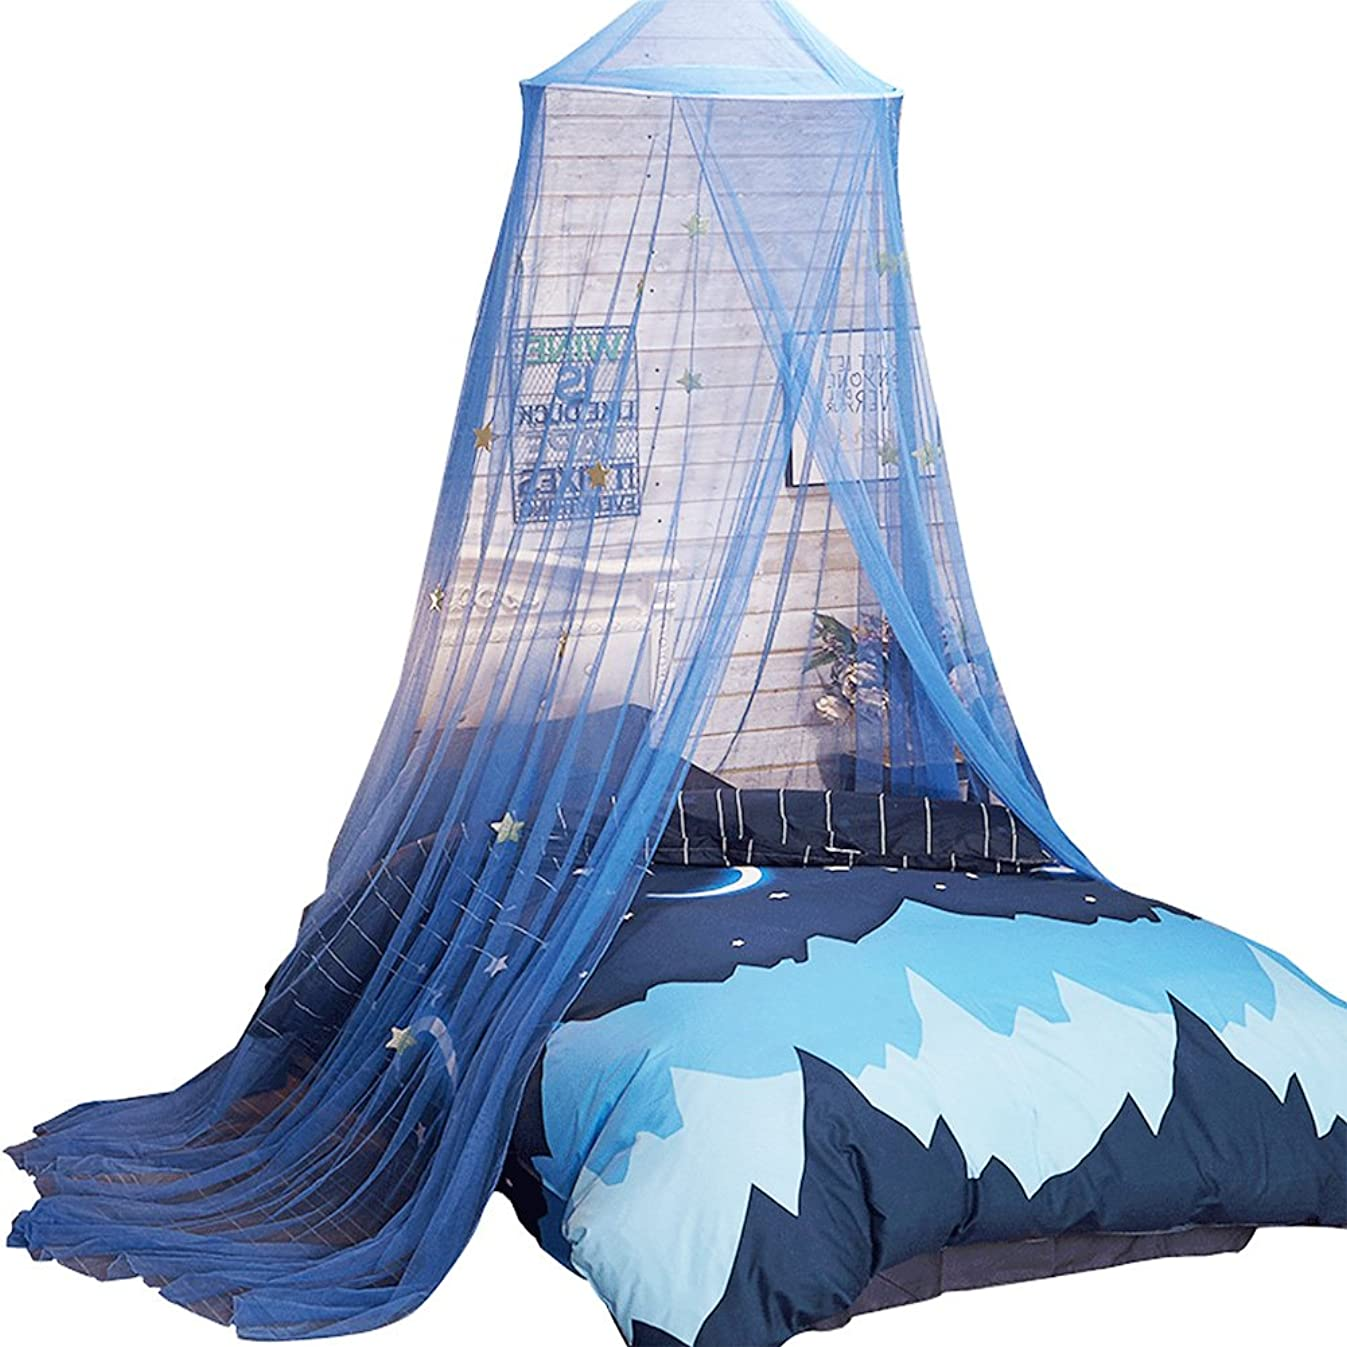 Uarter Bed Canopy Mosquito Net for Kids Bed Conical Curtains Kids Play Tent with Stars for Boys and Girls, Installation-Free, Blue/White